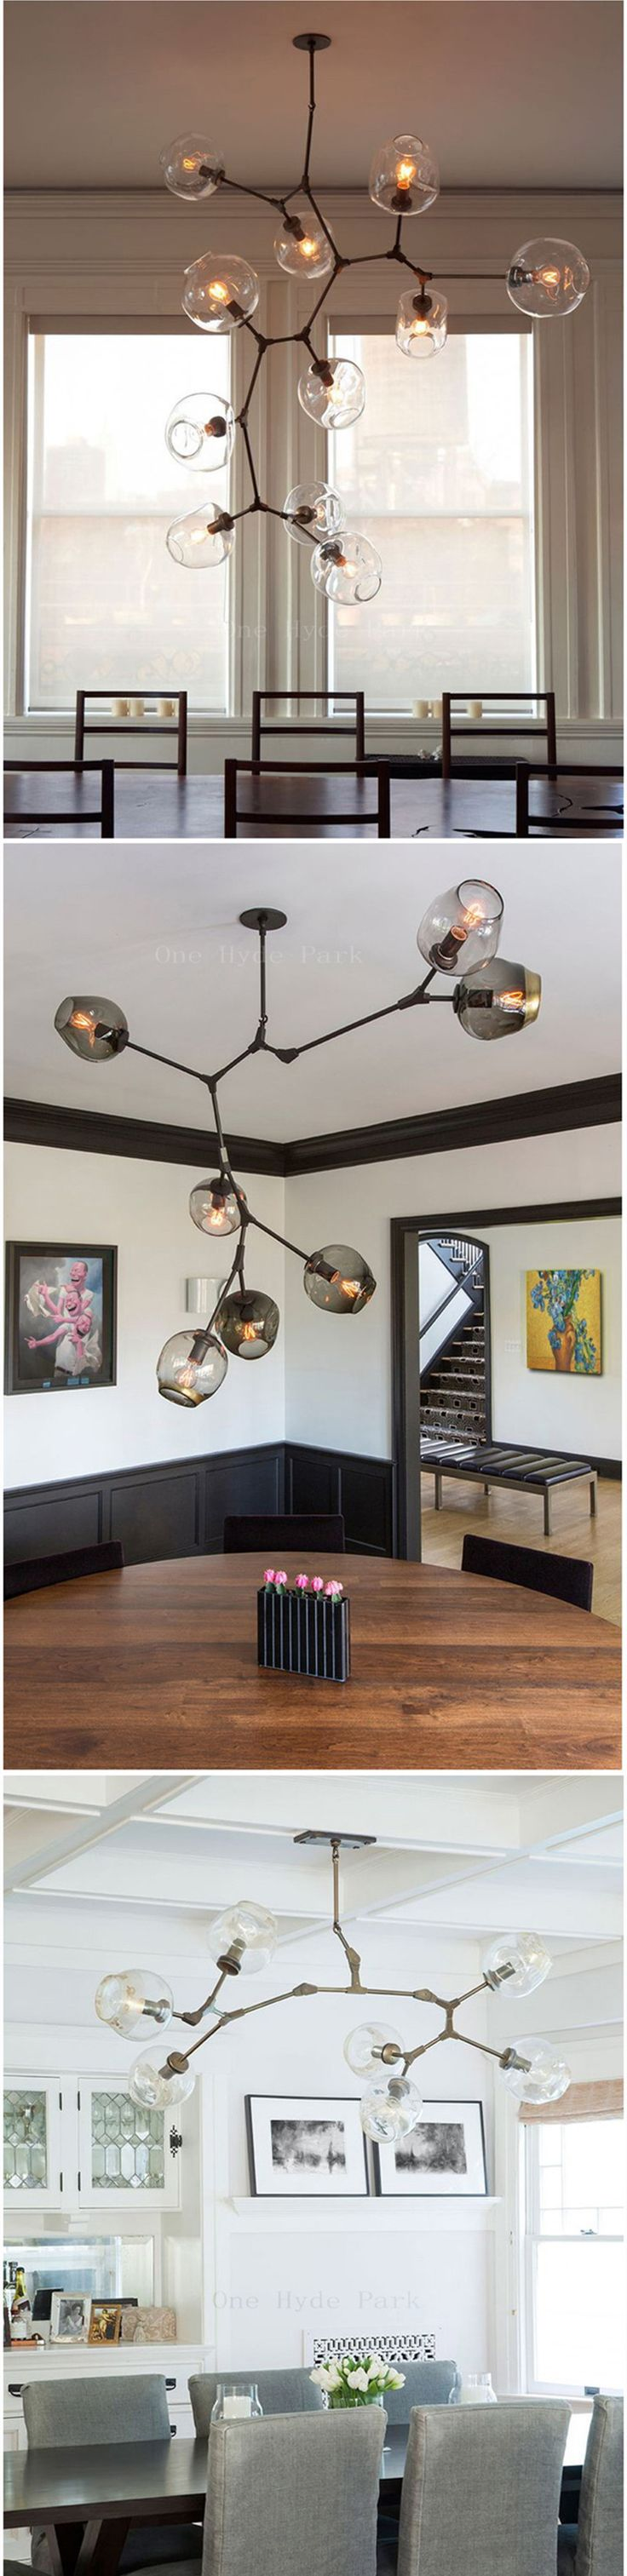 The 25 best lindsay adelman ideas on pinterest modern lindsey adelman 8 globe branching bubble glass pendent lightchandeliermodern livingdinning arubaitofo Choice Image